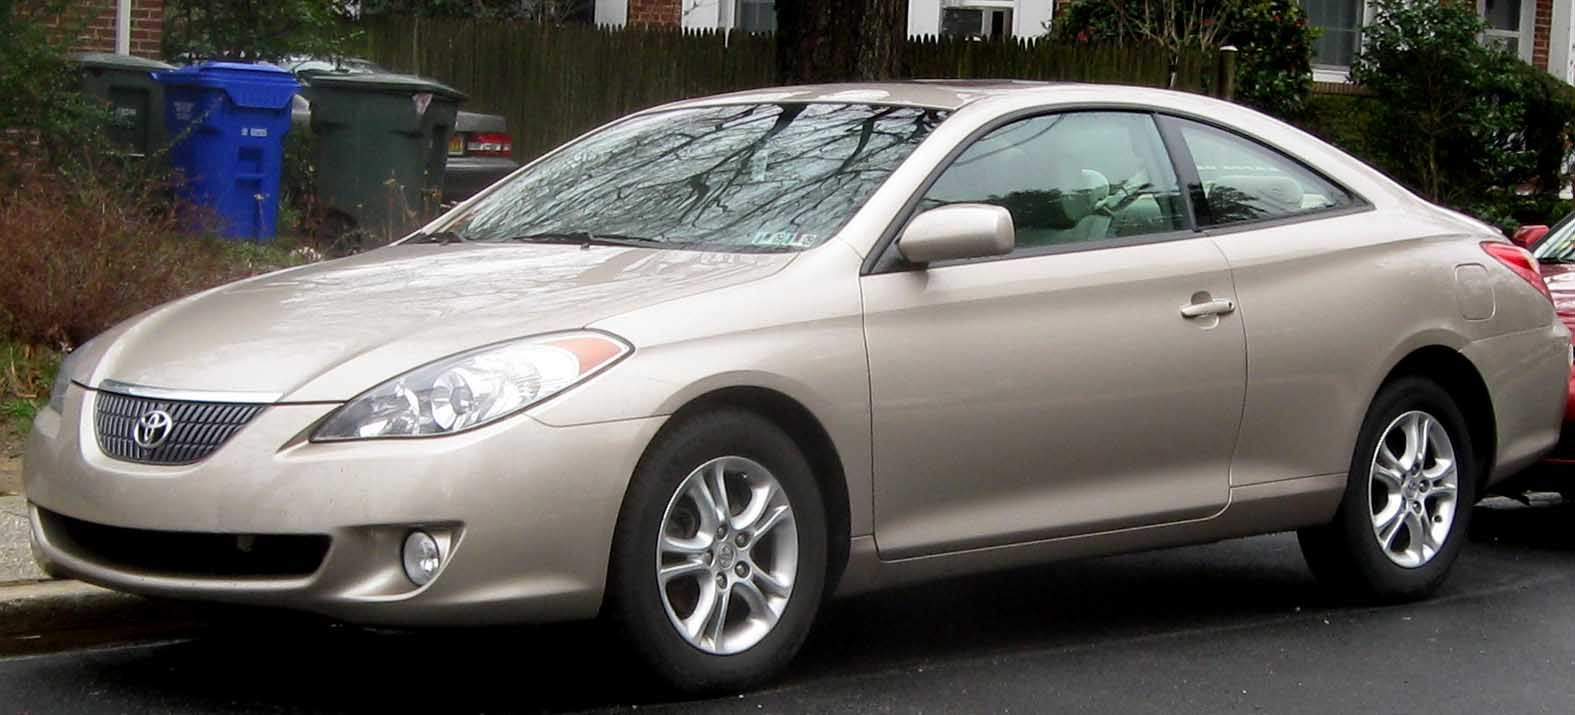 Toyota solara photo - 1